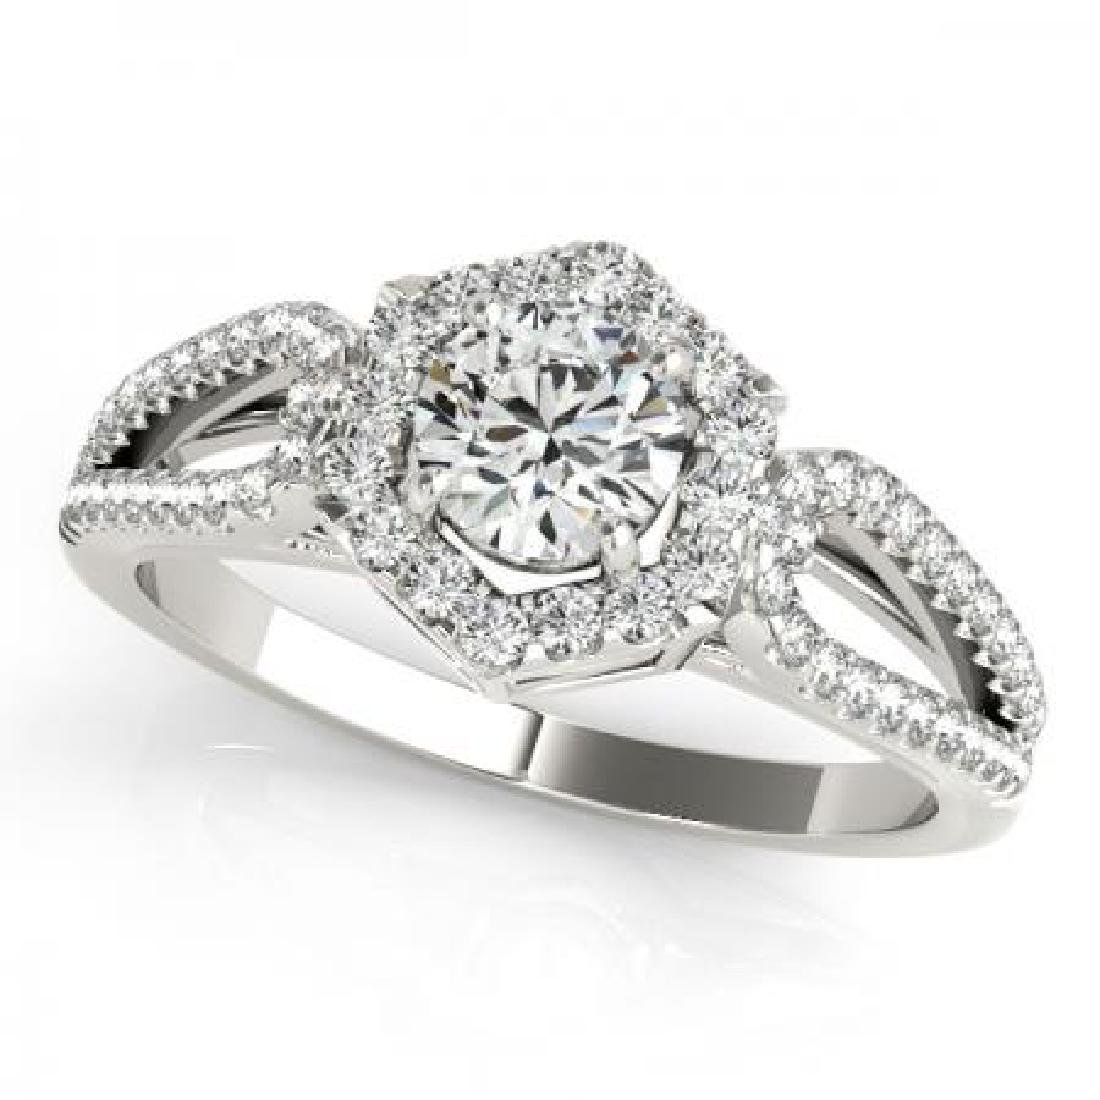 CERTIFIED PLATINUM 1.38 CT G-H/VS-SI1 DIAMOND HALO ENGA